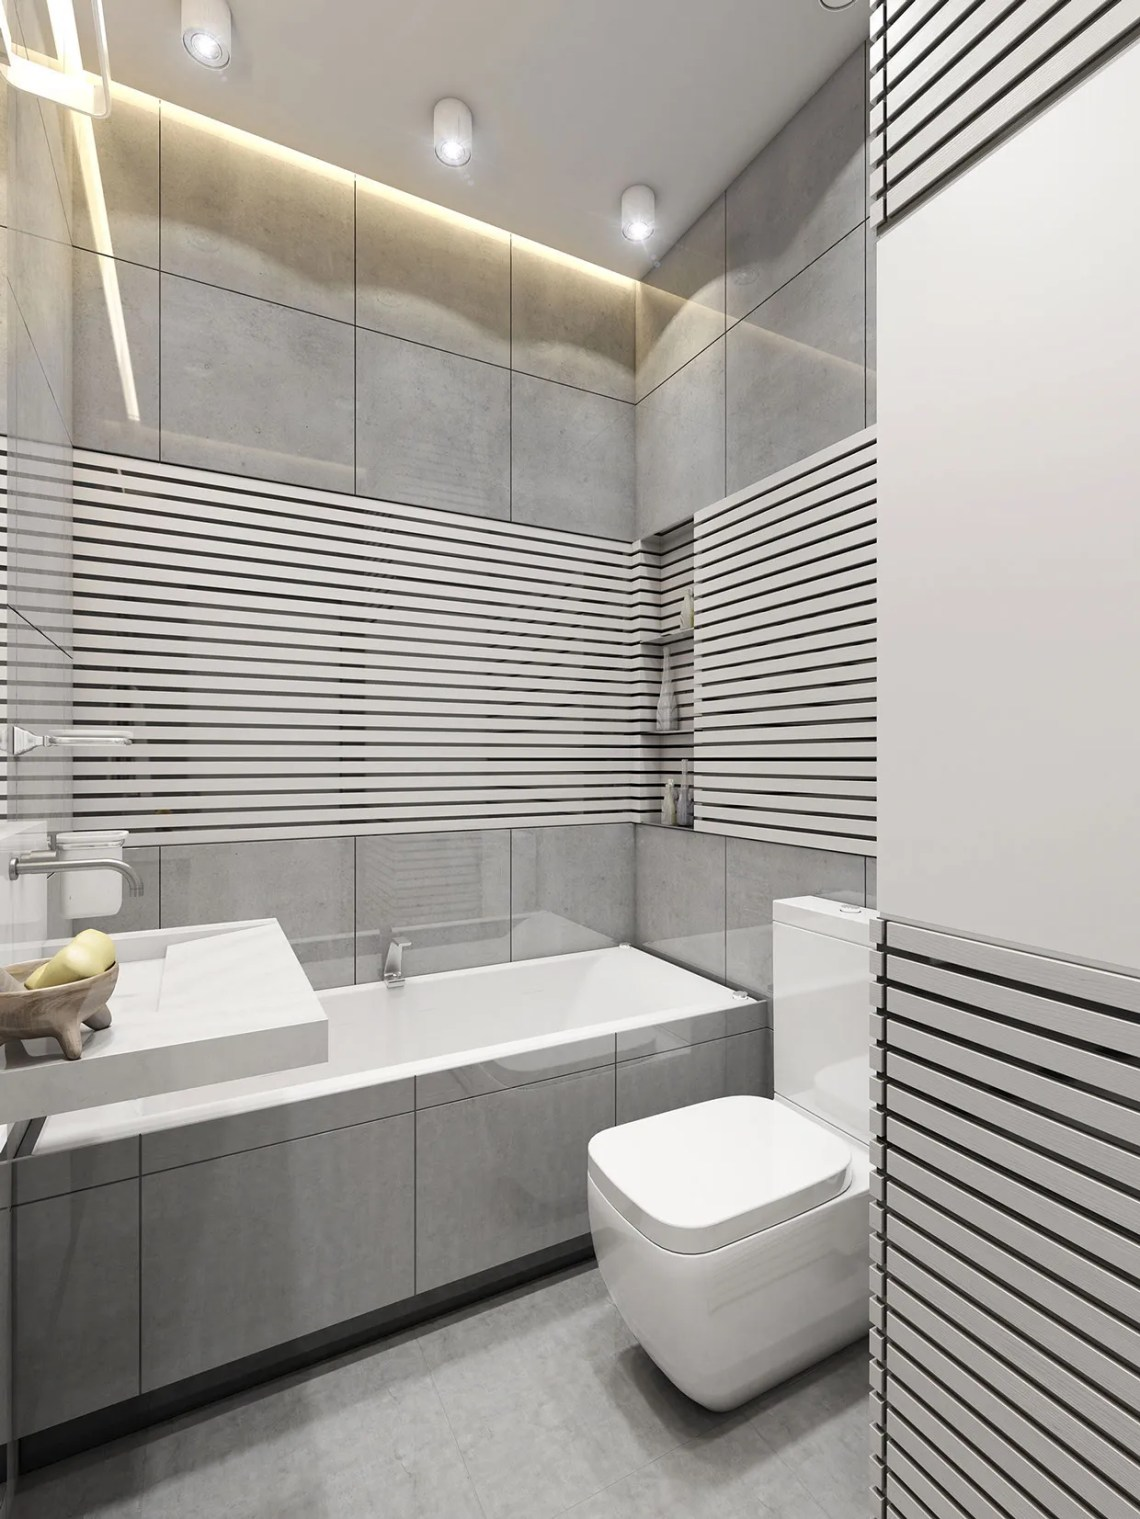 A Suitable Simple Small Bathroom Designs Looks So Perfect ...